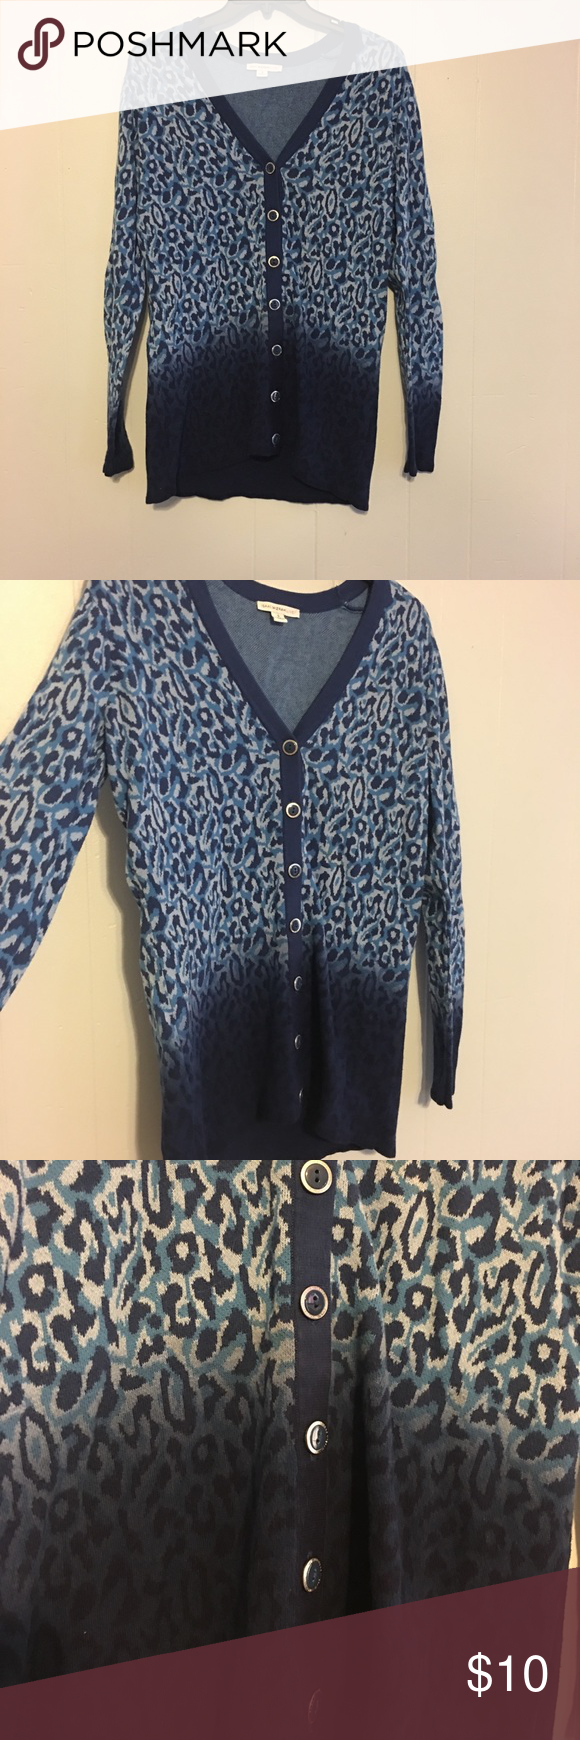 Blue leopard print cardigan | Silver buttons, Leopards and Cotton